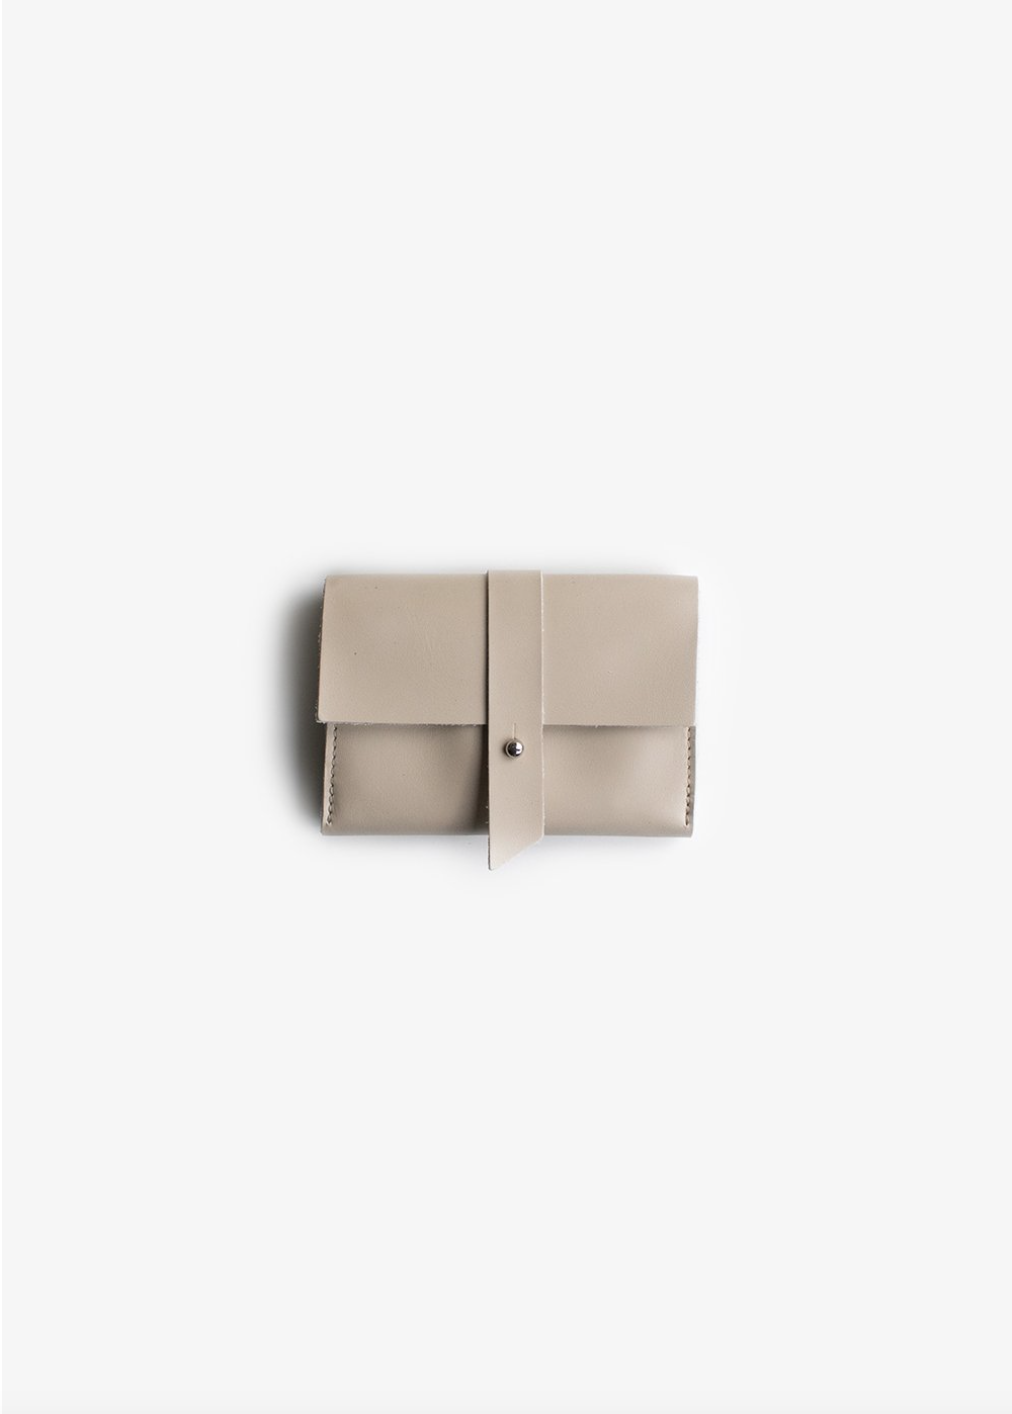 Product image Wallet // M